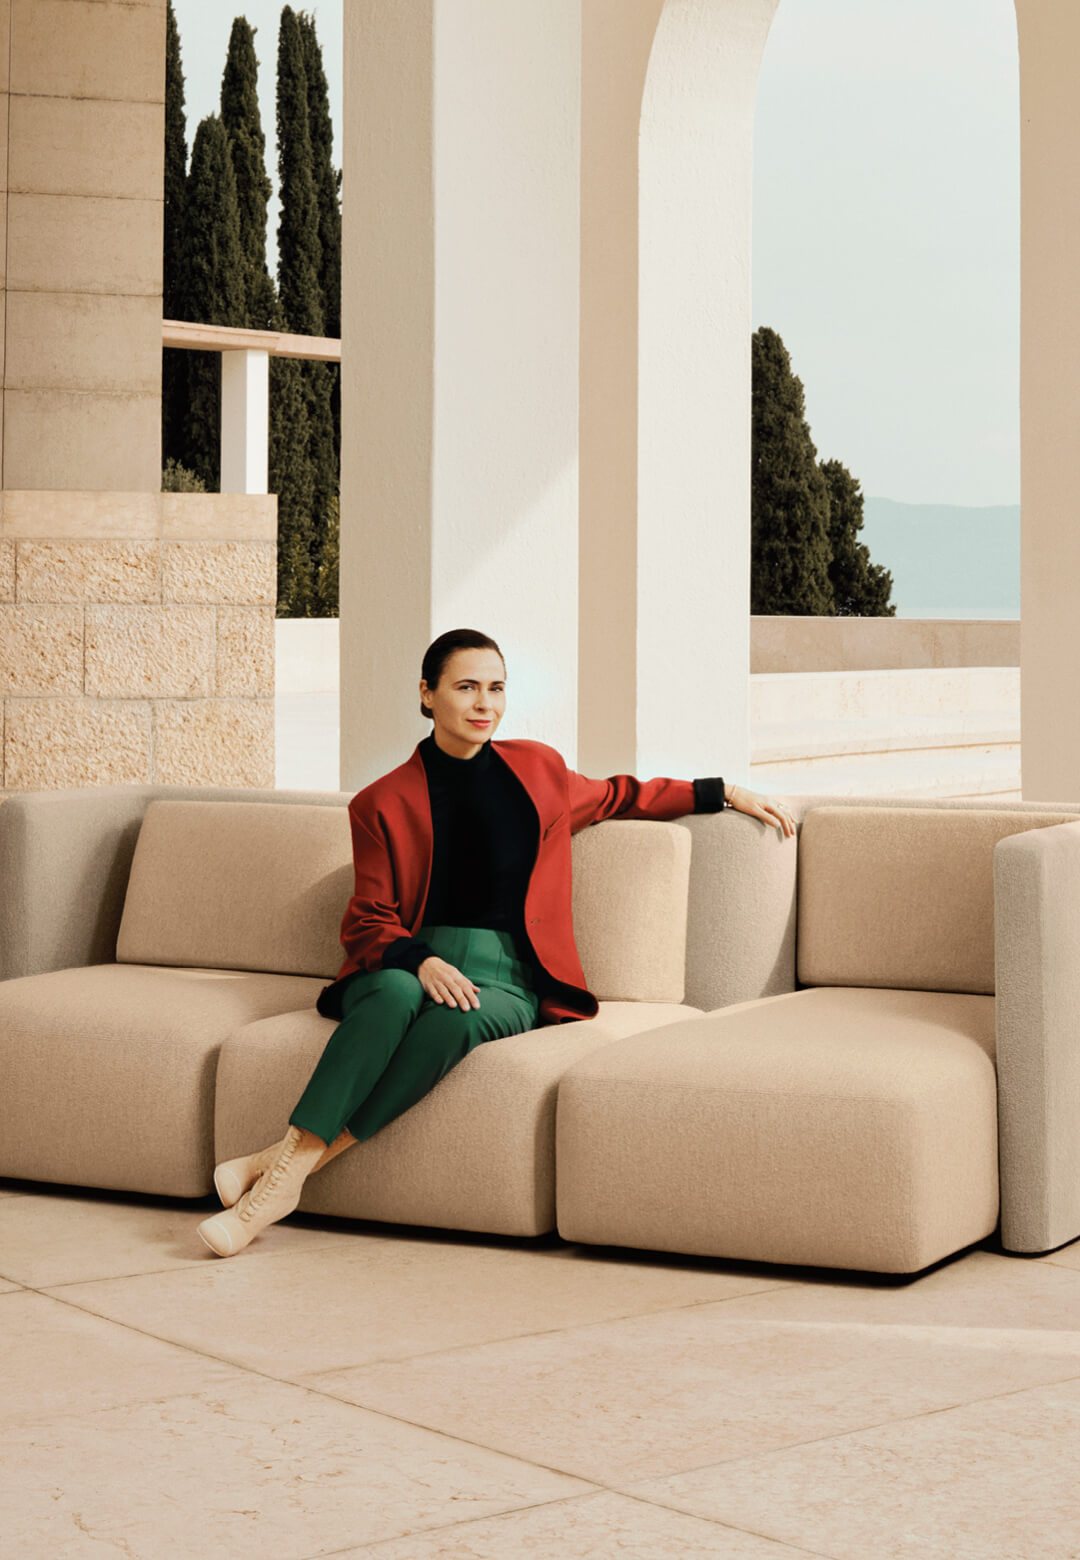 Cristina Celestino speaks with STIR about her collaborations with fashion brands like Fendi and Sergio Rossi as well as her own brand Attico Design | Gala Seating System| Cristina Celestino  | STIRworld